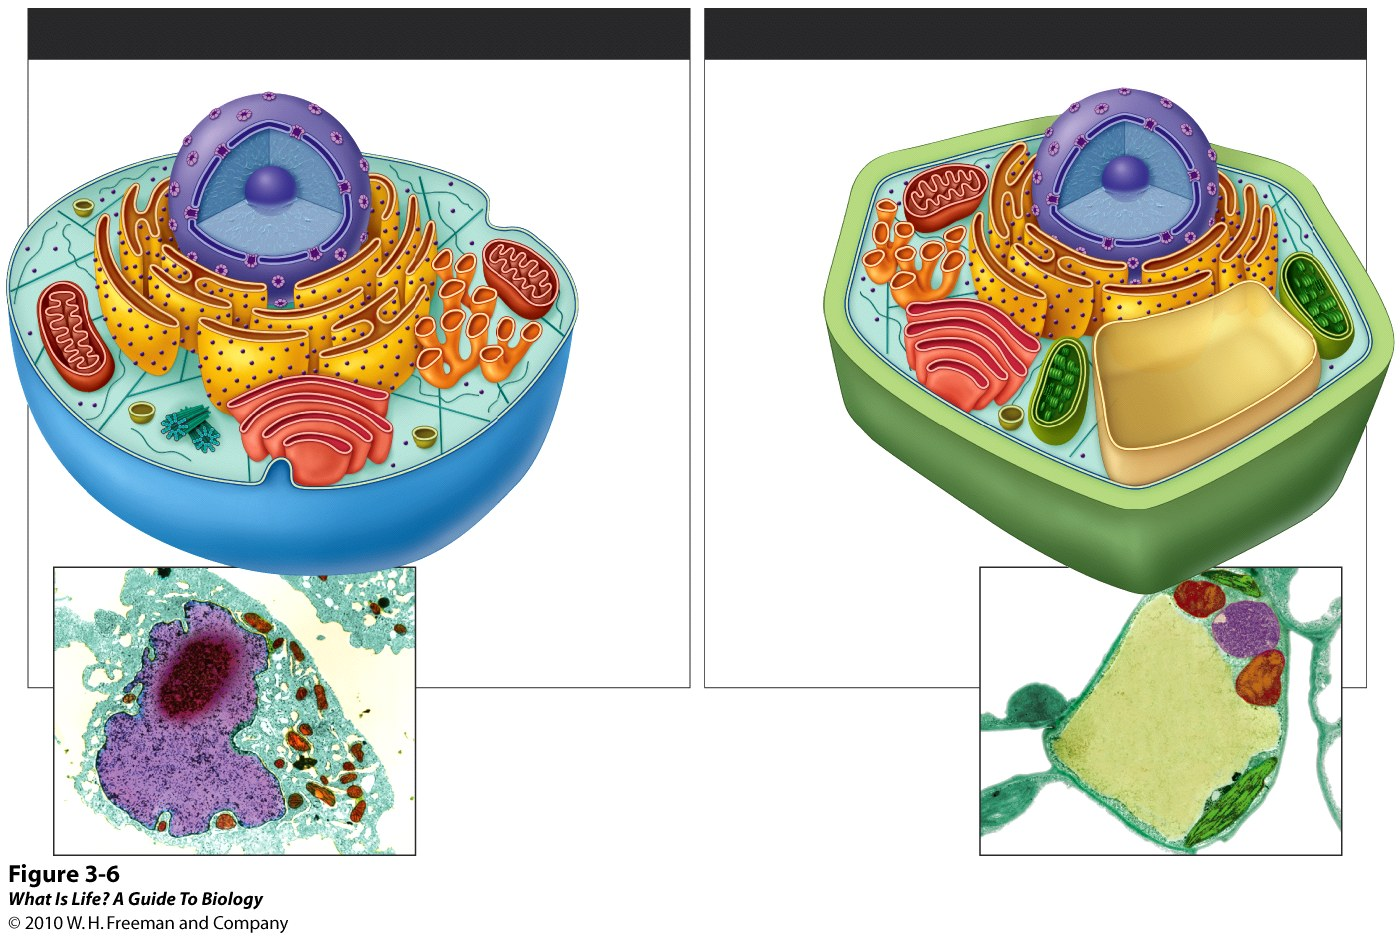 eukaryotic cell unlabeled - photo #8